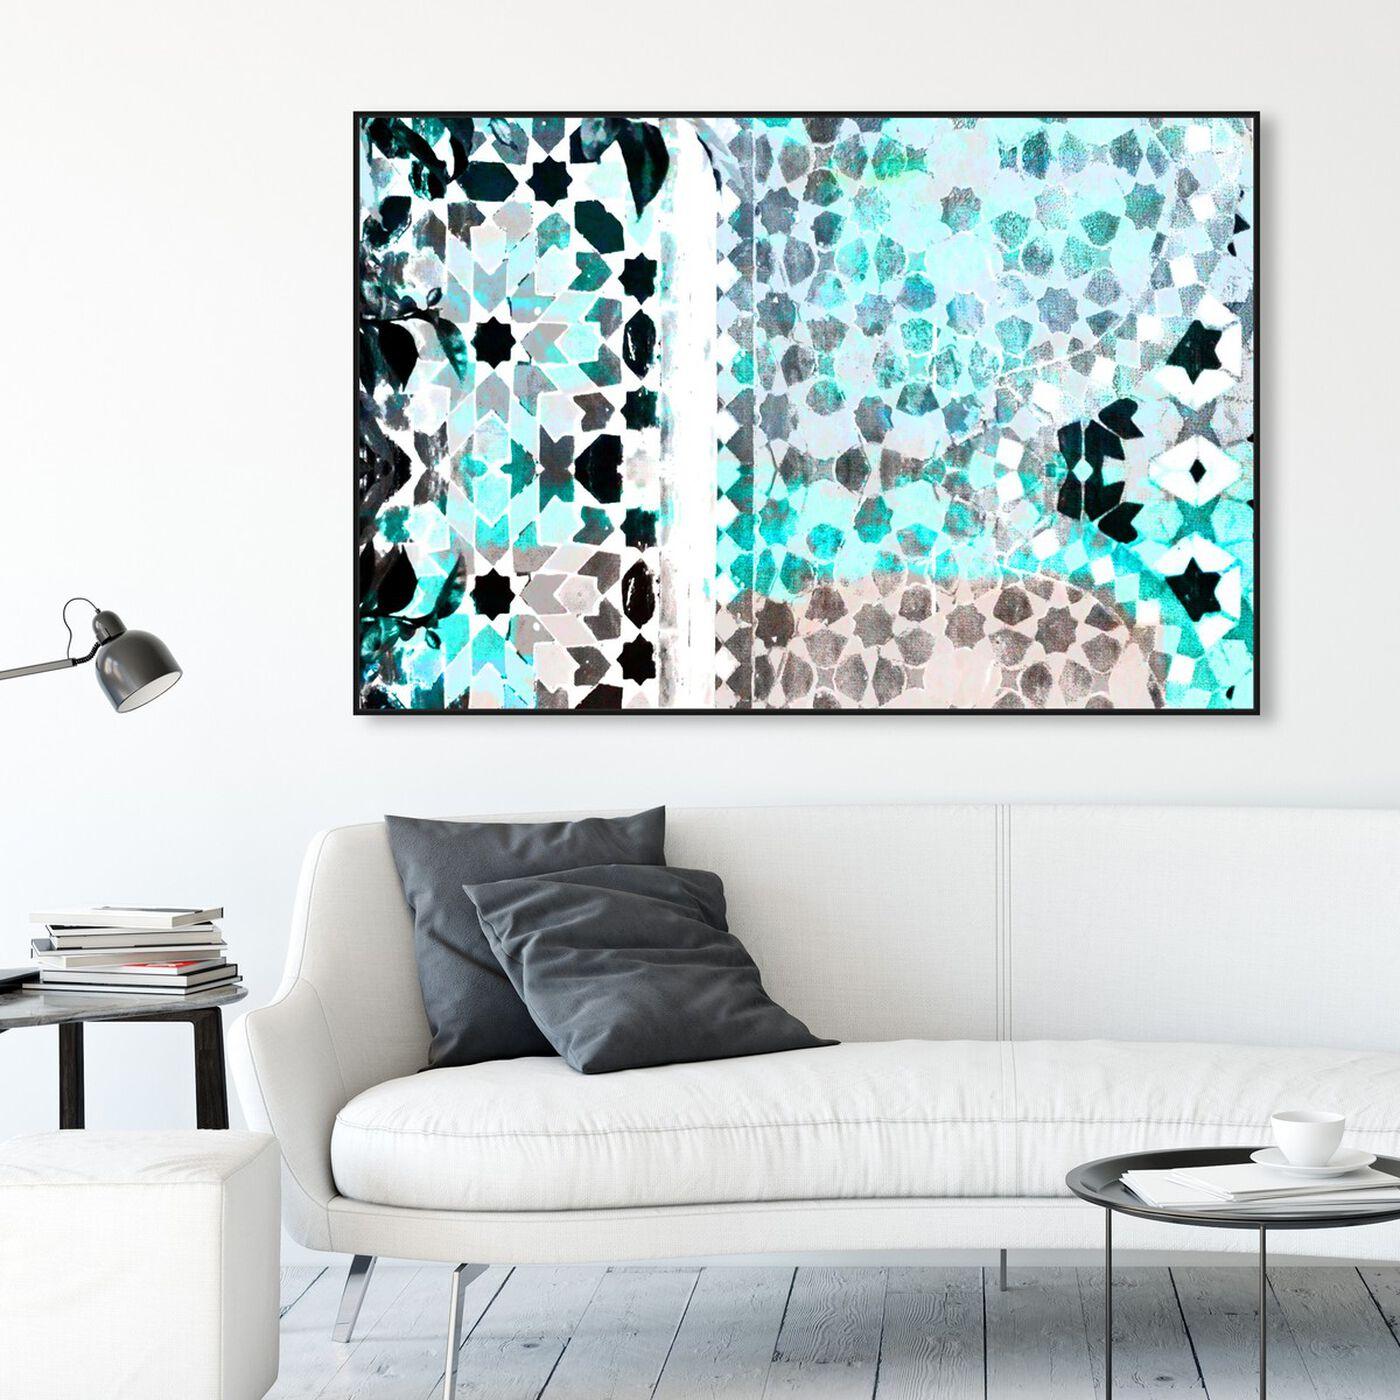 Hanging view of Zahir featuring abstract and patterns art.